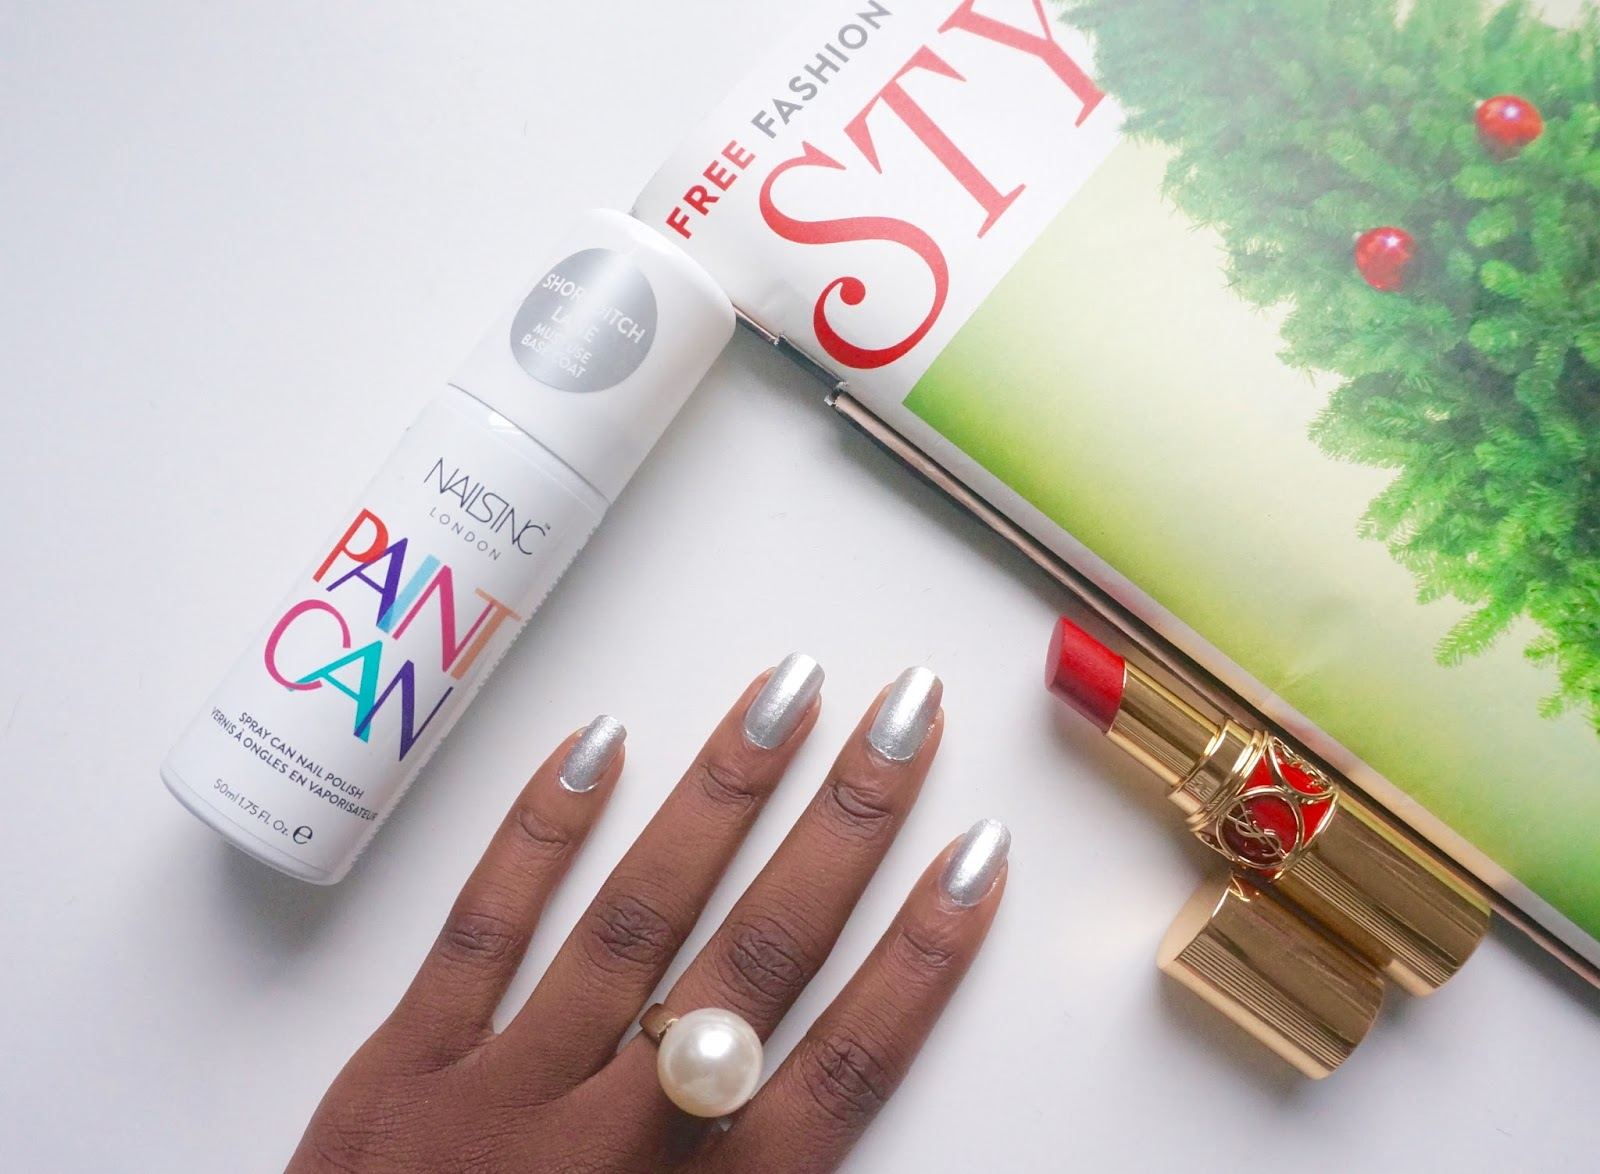 Does it work nails inc paint can spray on nail - Nail Paint Of The Week Nails Inc Spray Can Shoreditch Lane